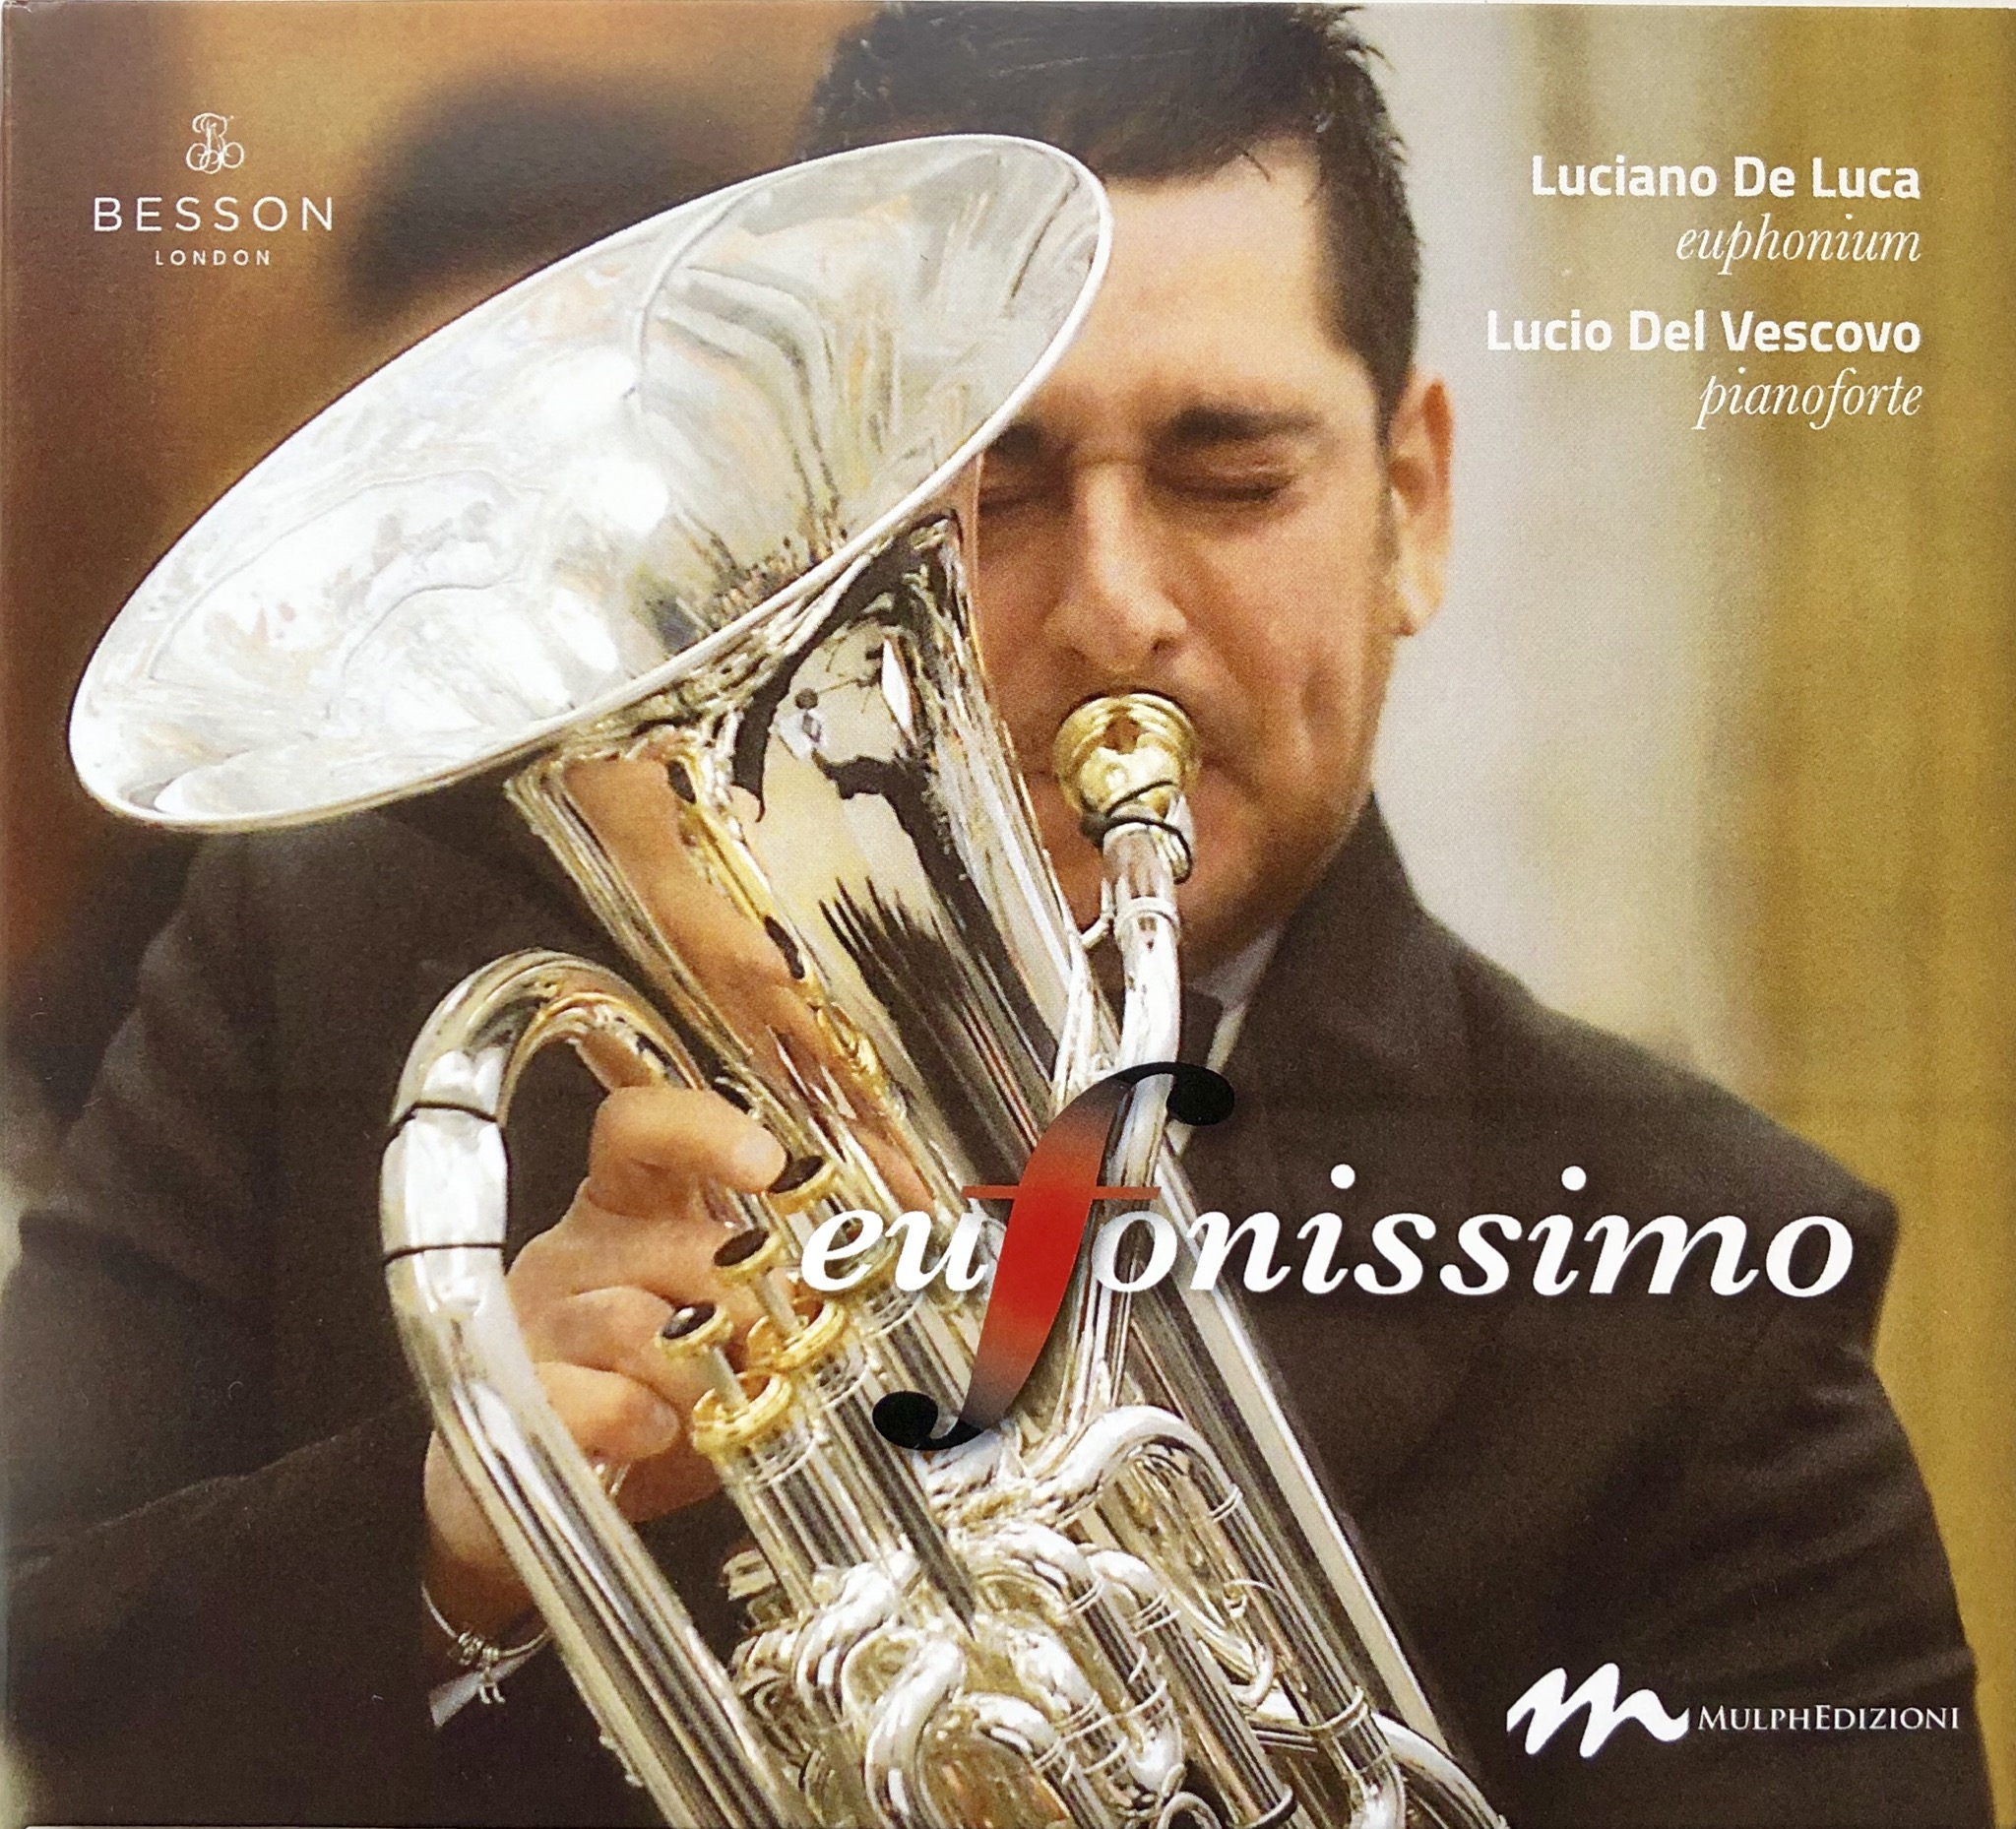 CD - Eufonissimo - Luciano De Luca (euph) with Lucio Del Vescovo (piano) - not currently available - being reprinted